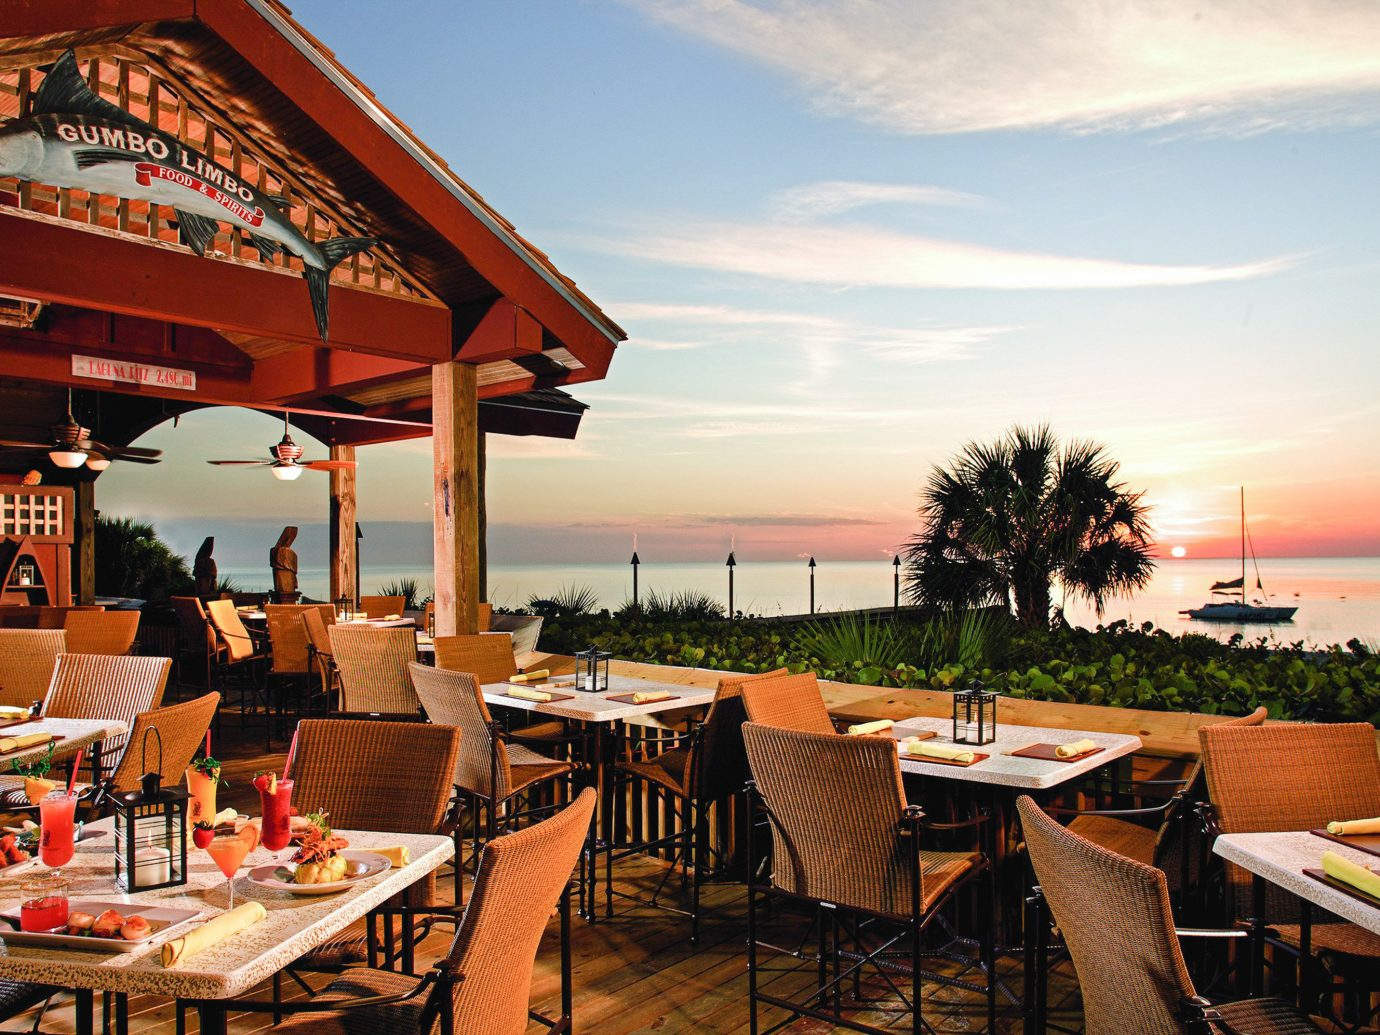 Florida Miami Trip Ideas Weekend Getaways restaurant Resort real estate